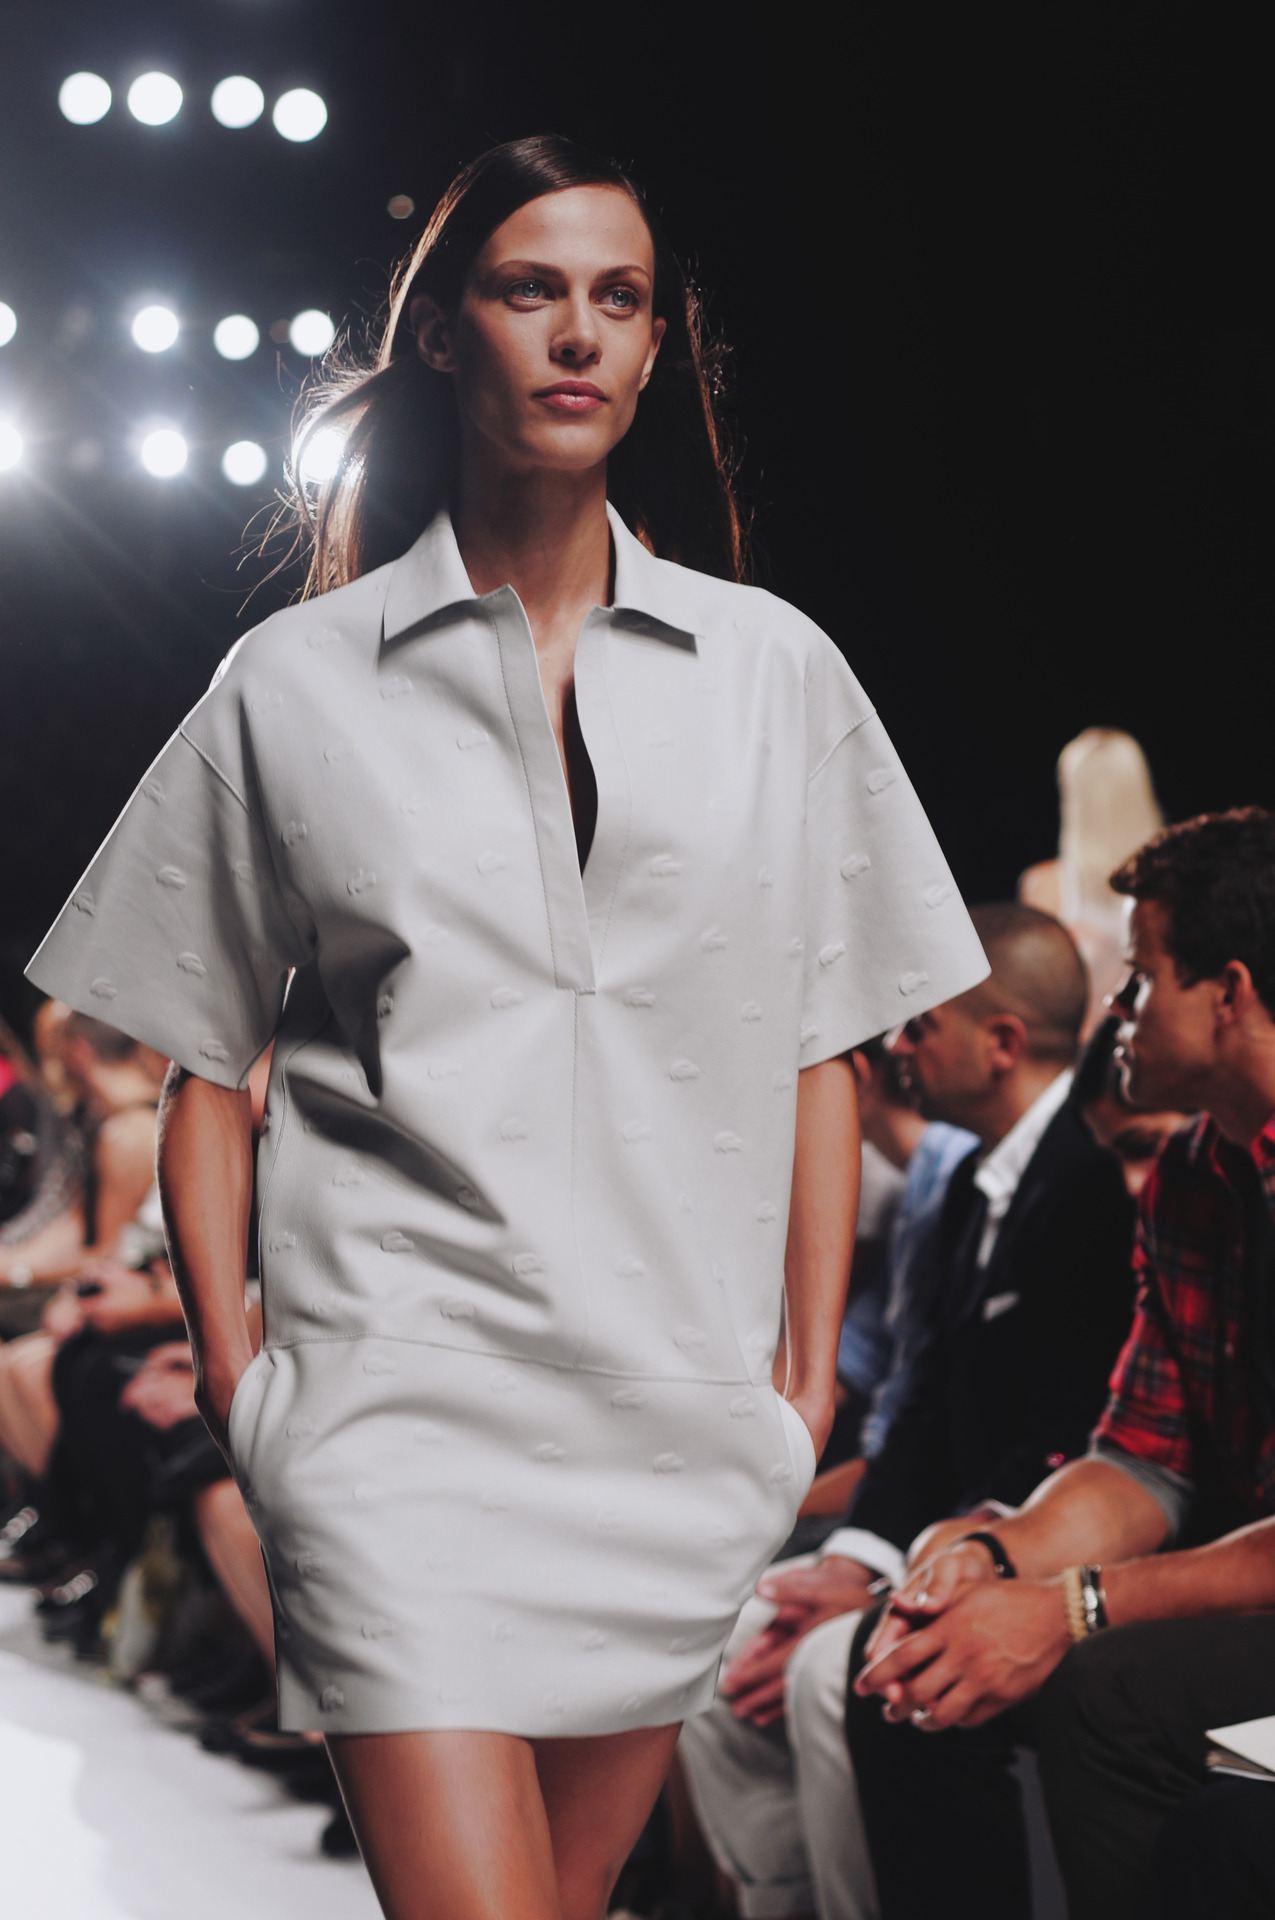 Lacoste runway show @ the Lincoln Center